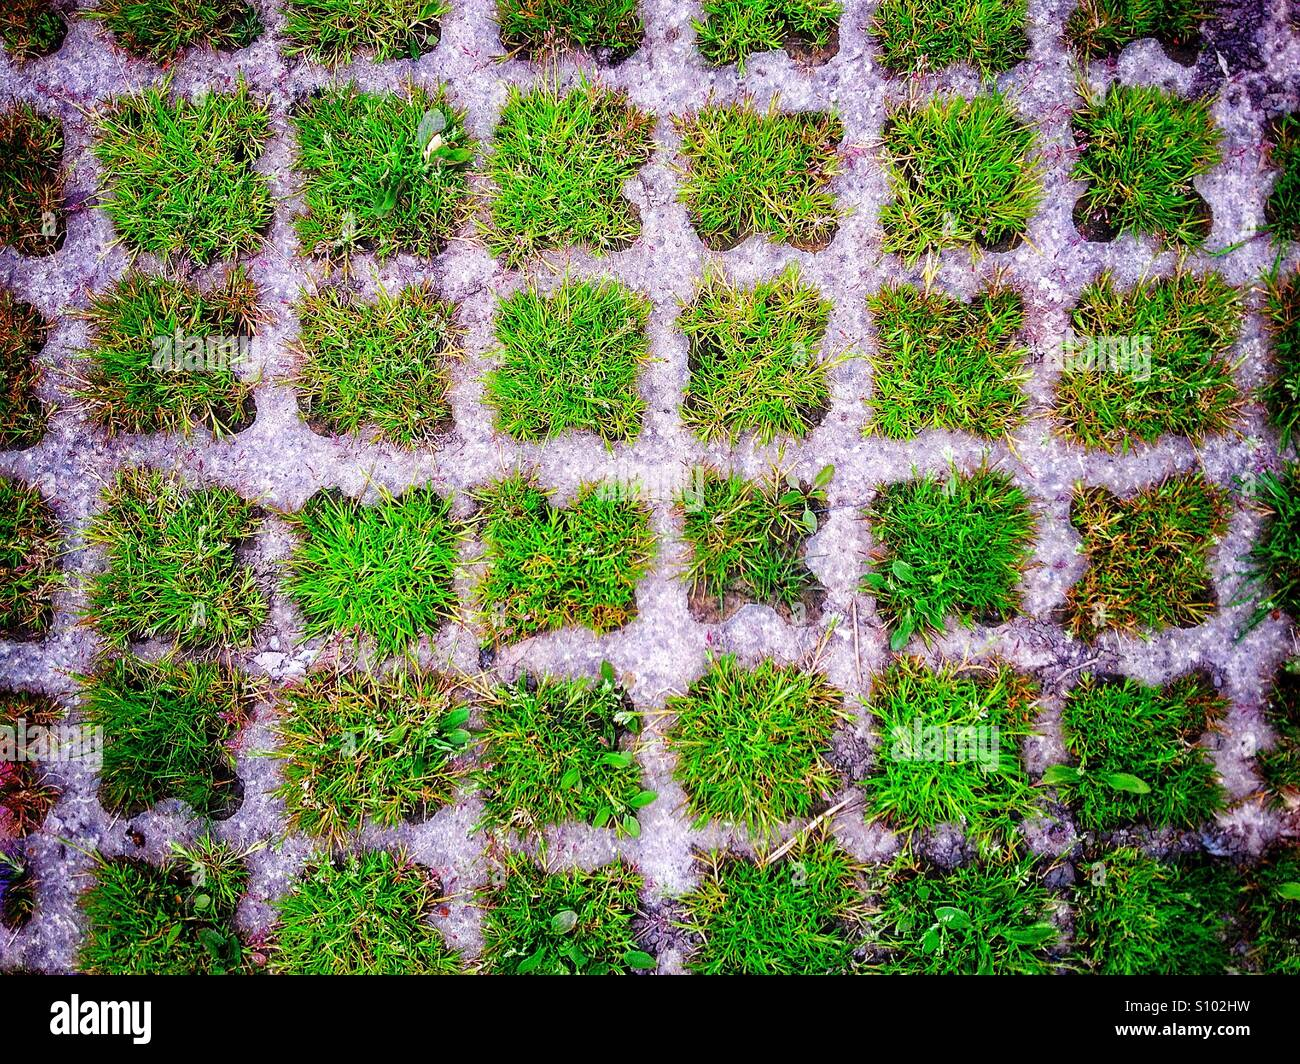 Grassy places Photo Stock